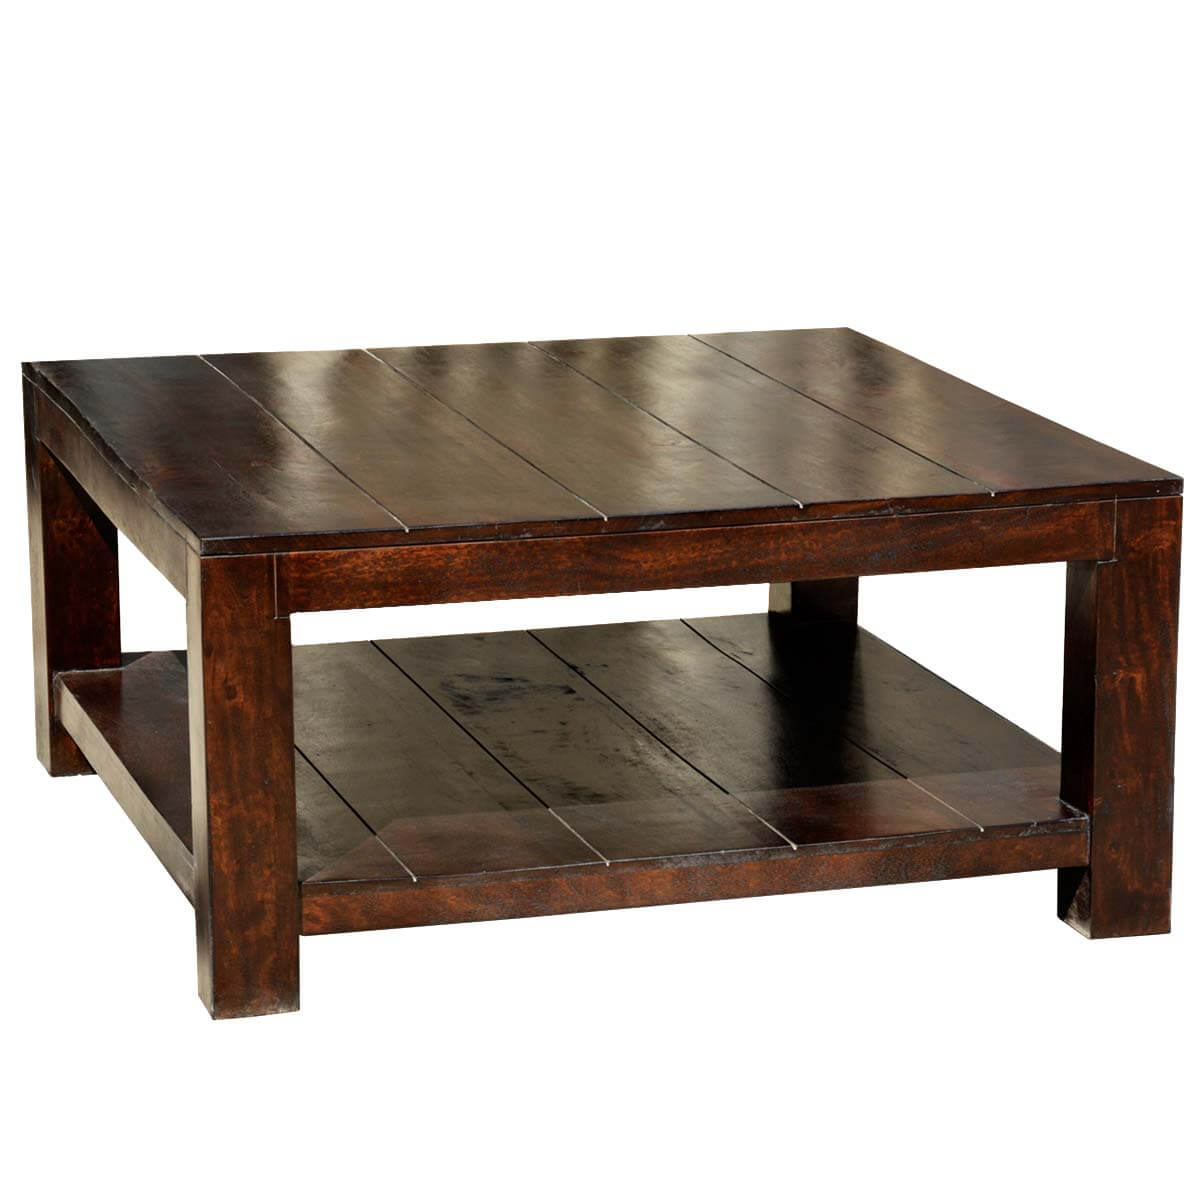 Mission mango wood square coffee table Wood square coffee tables